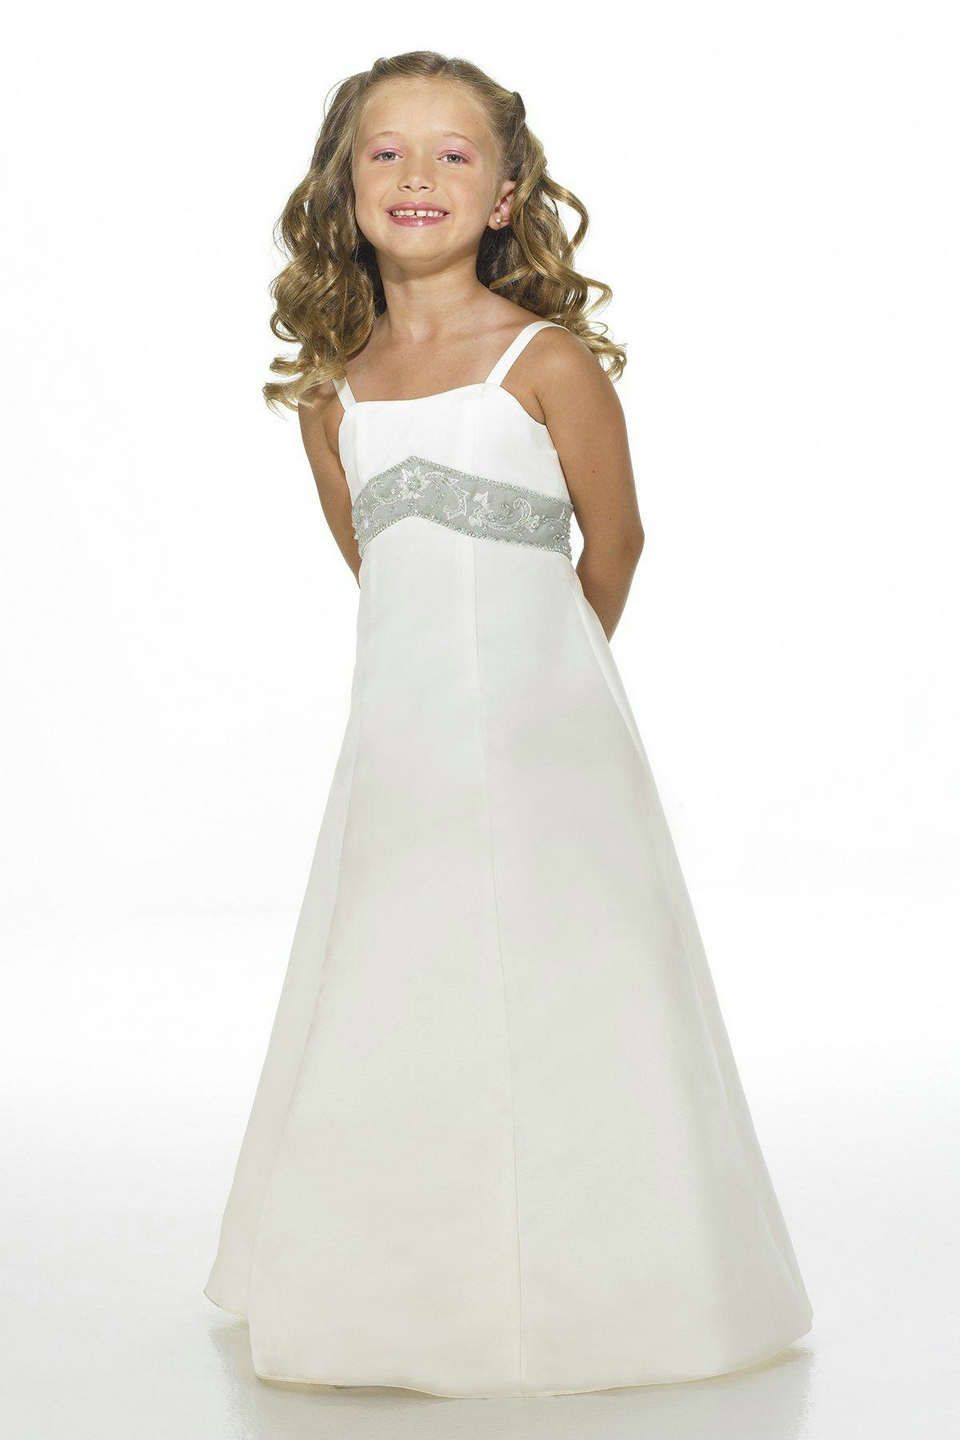 1000  images about flower girl dresses on Pinterest - Yellow ...